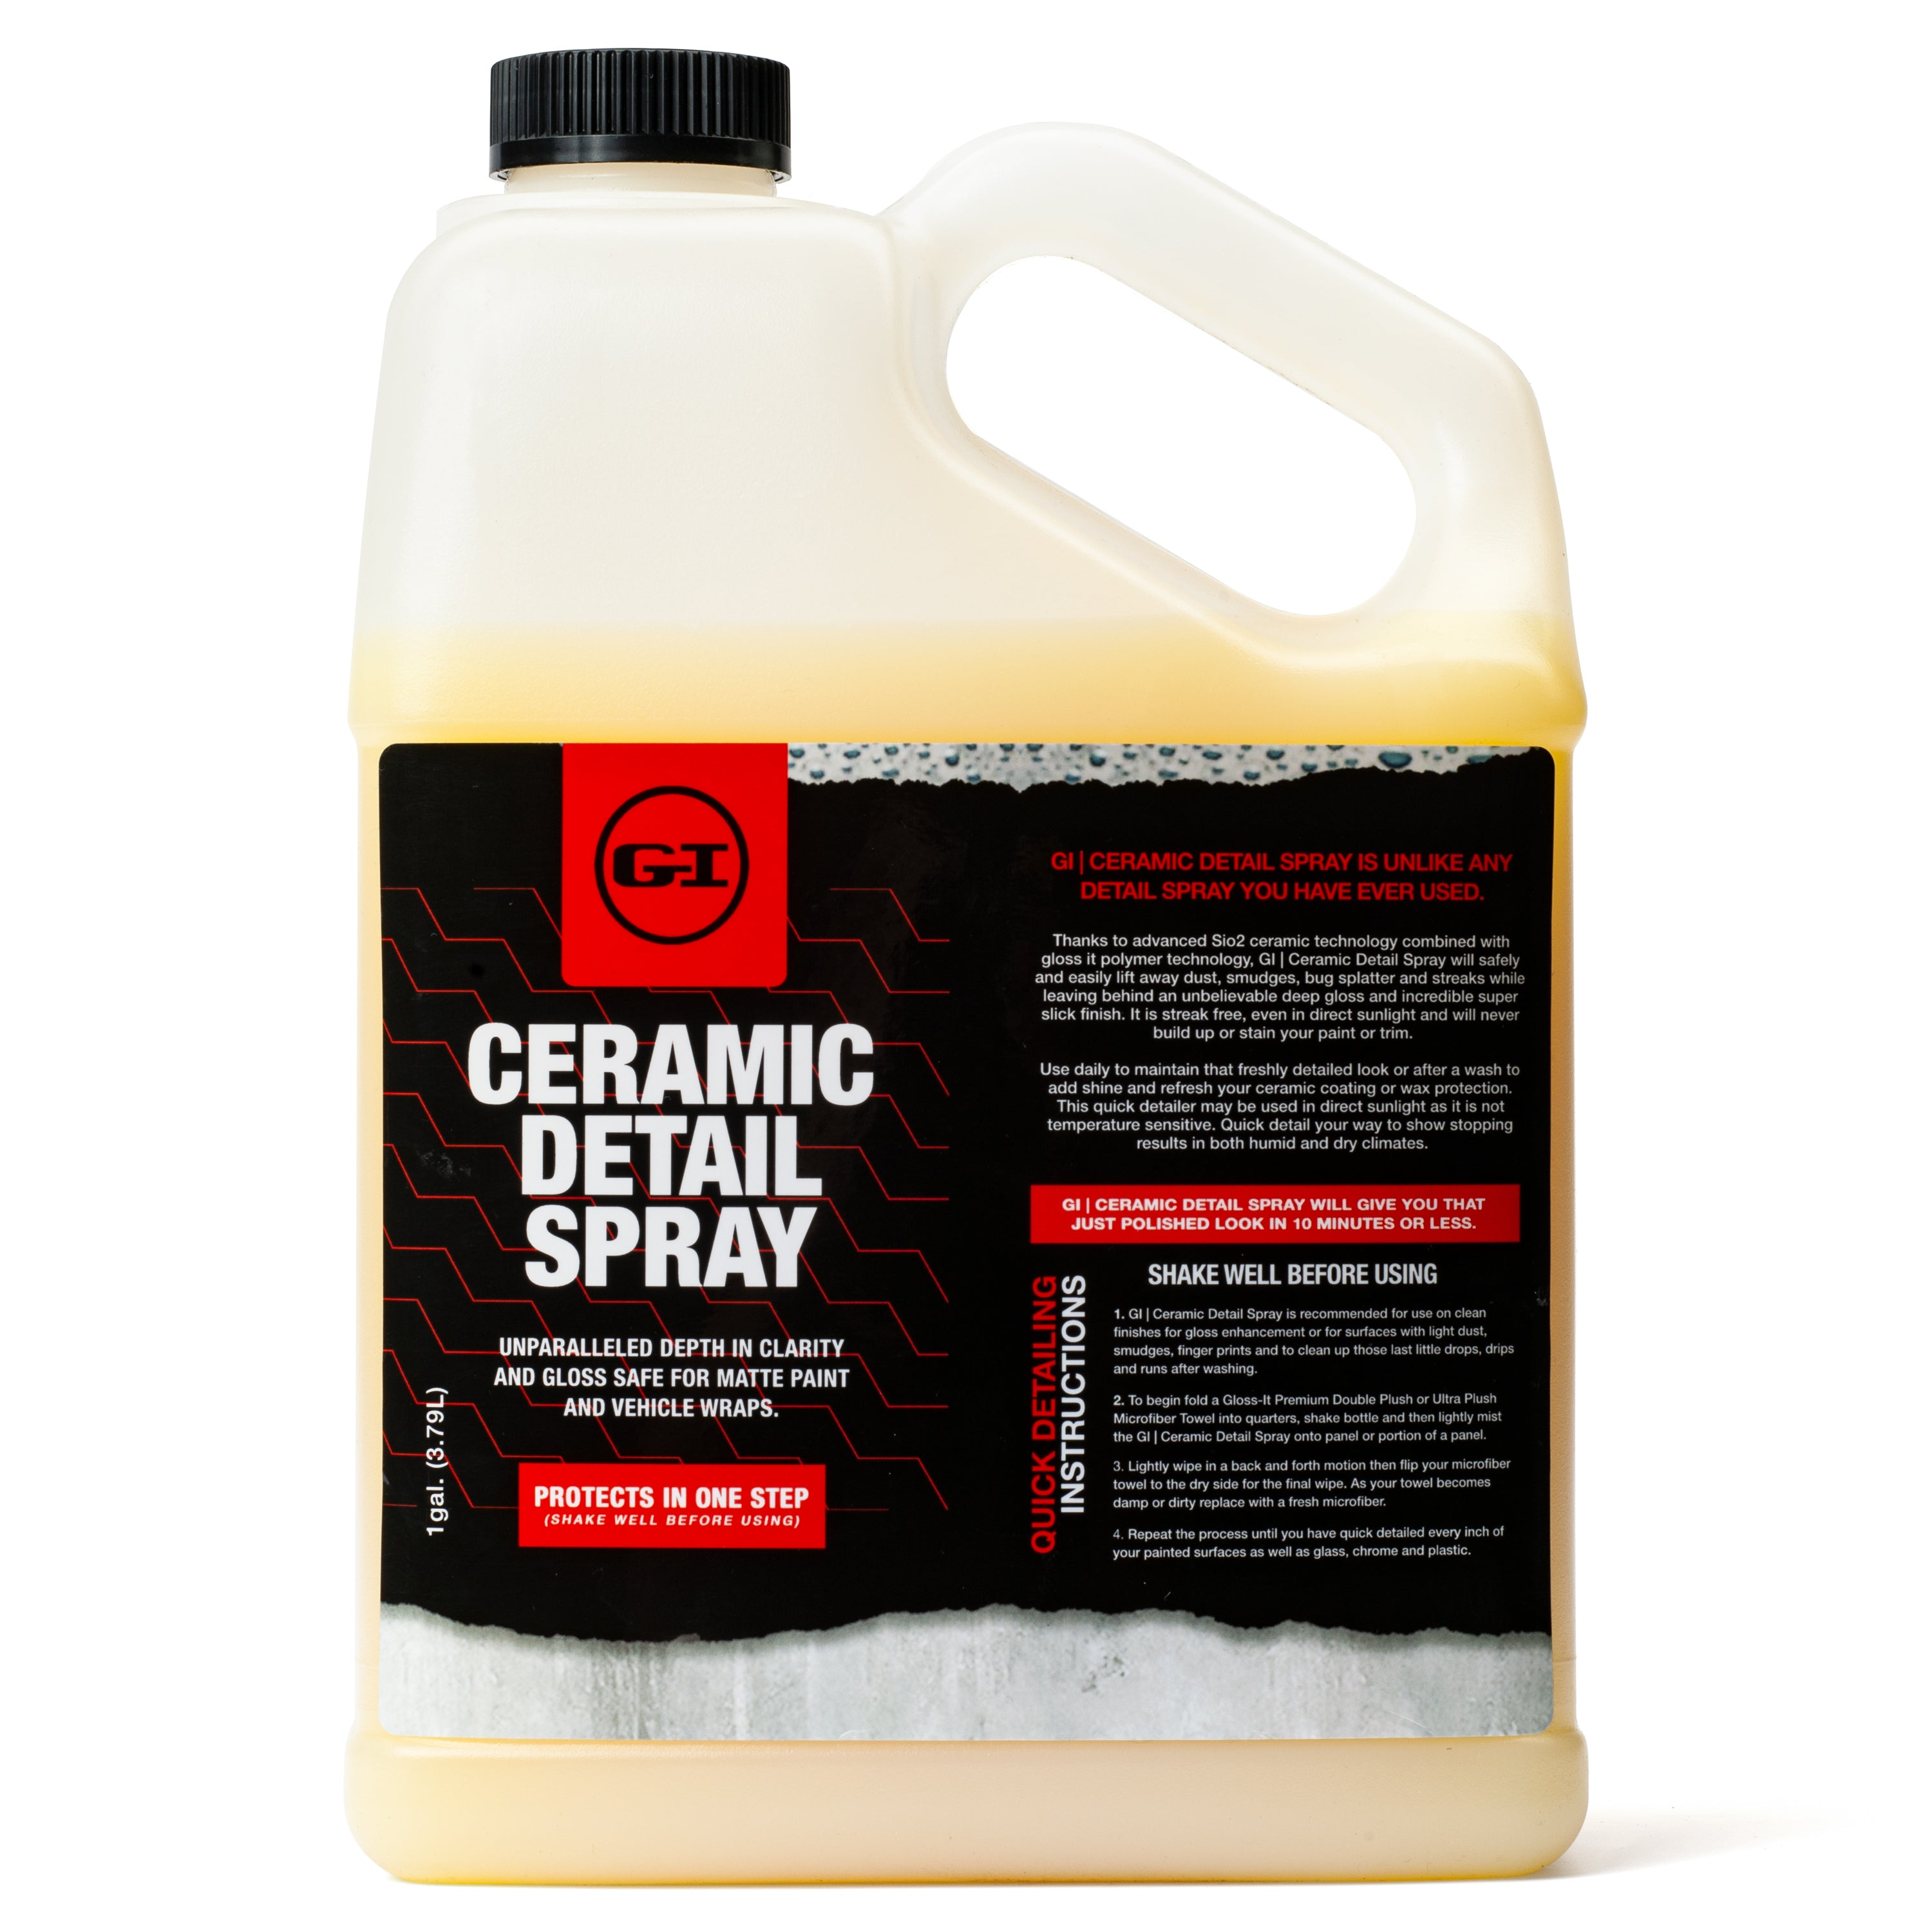 Ceramic Detail Gallon + 5 FREE Microfiber Towels